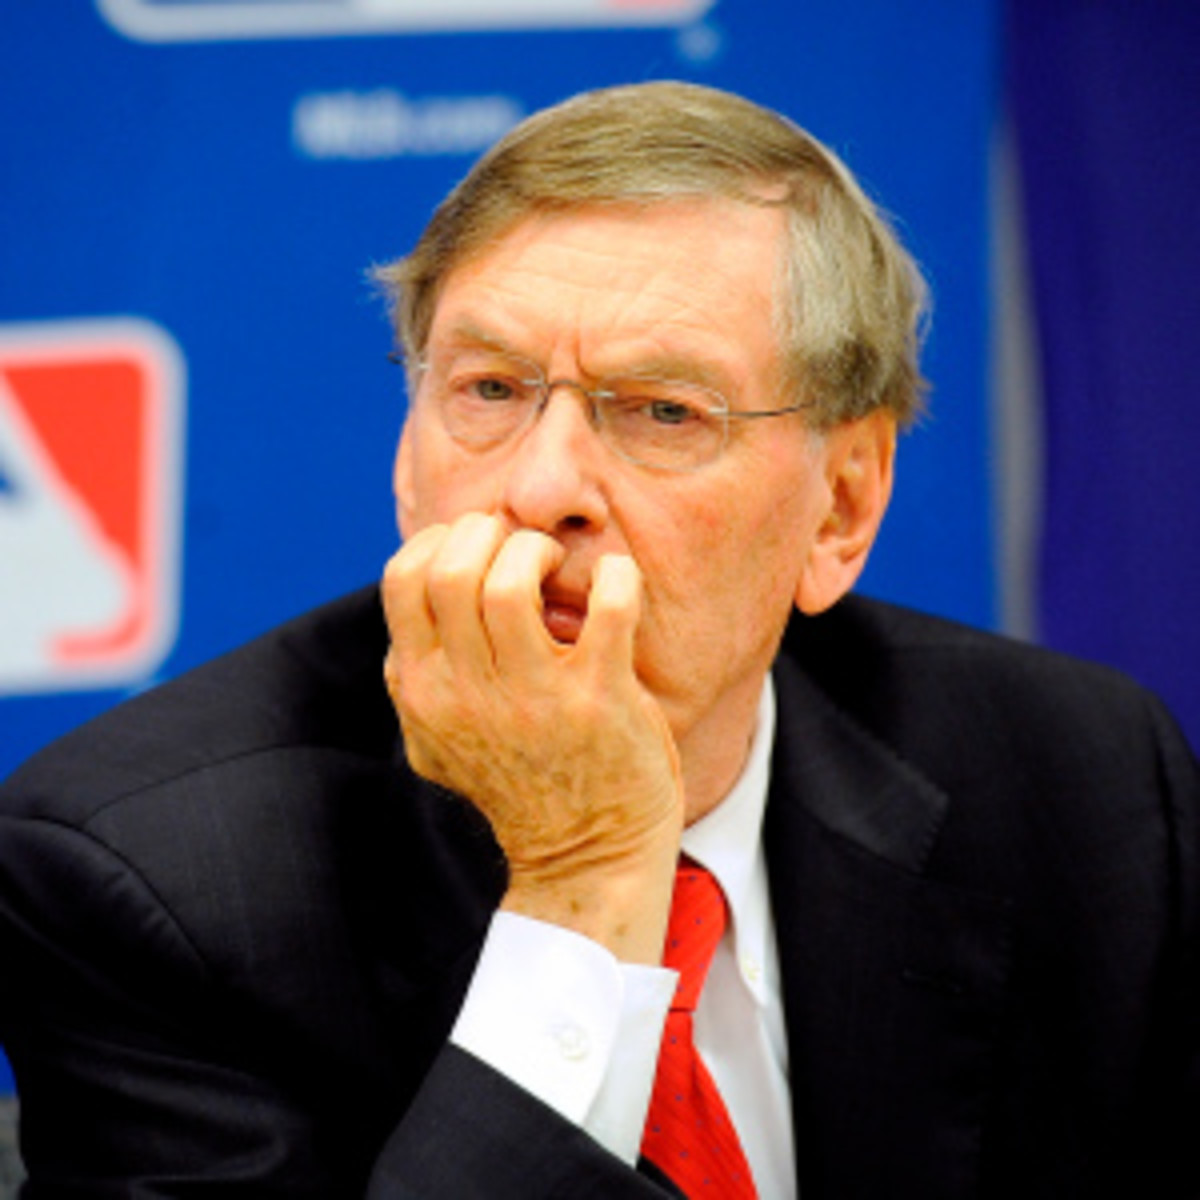 The Miami New Times denied MLB's request for documents it obtained from Biogenesis. (Patrick McDermott/Getty Images)